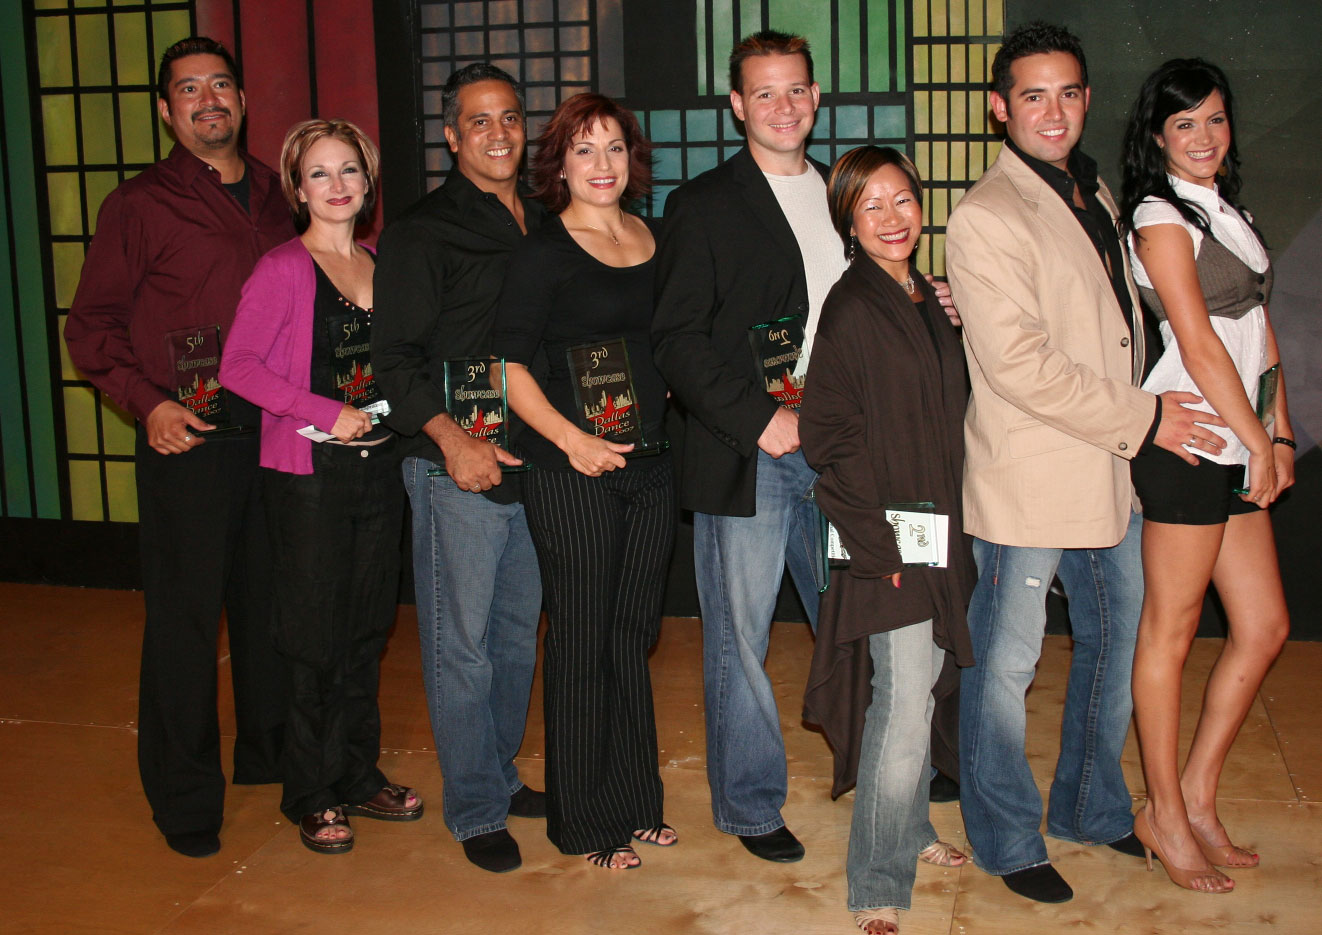 Dallas Dance 2007 - Contest Winners - by Ron Turner